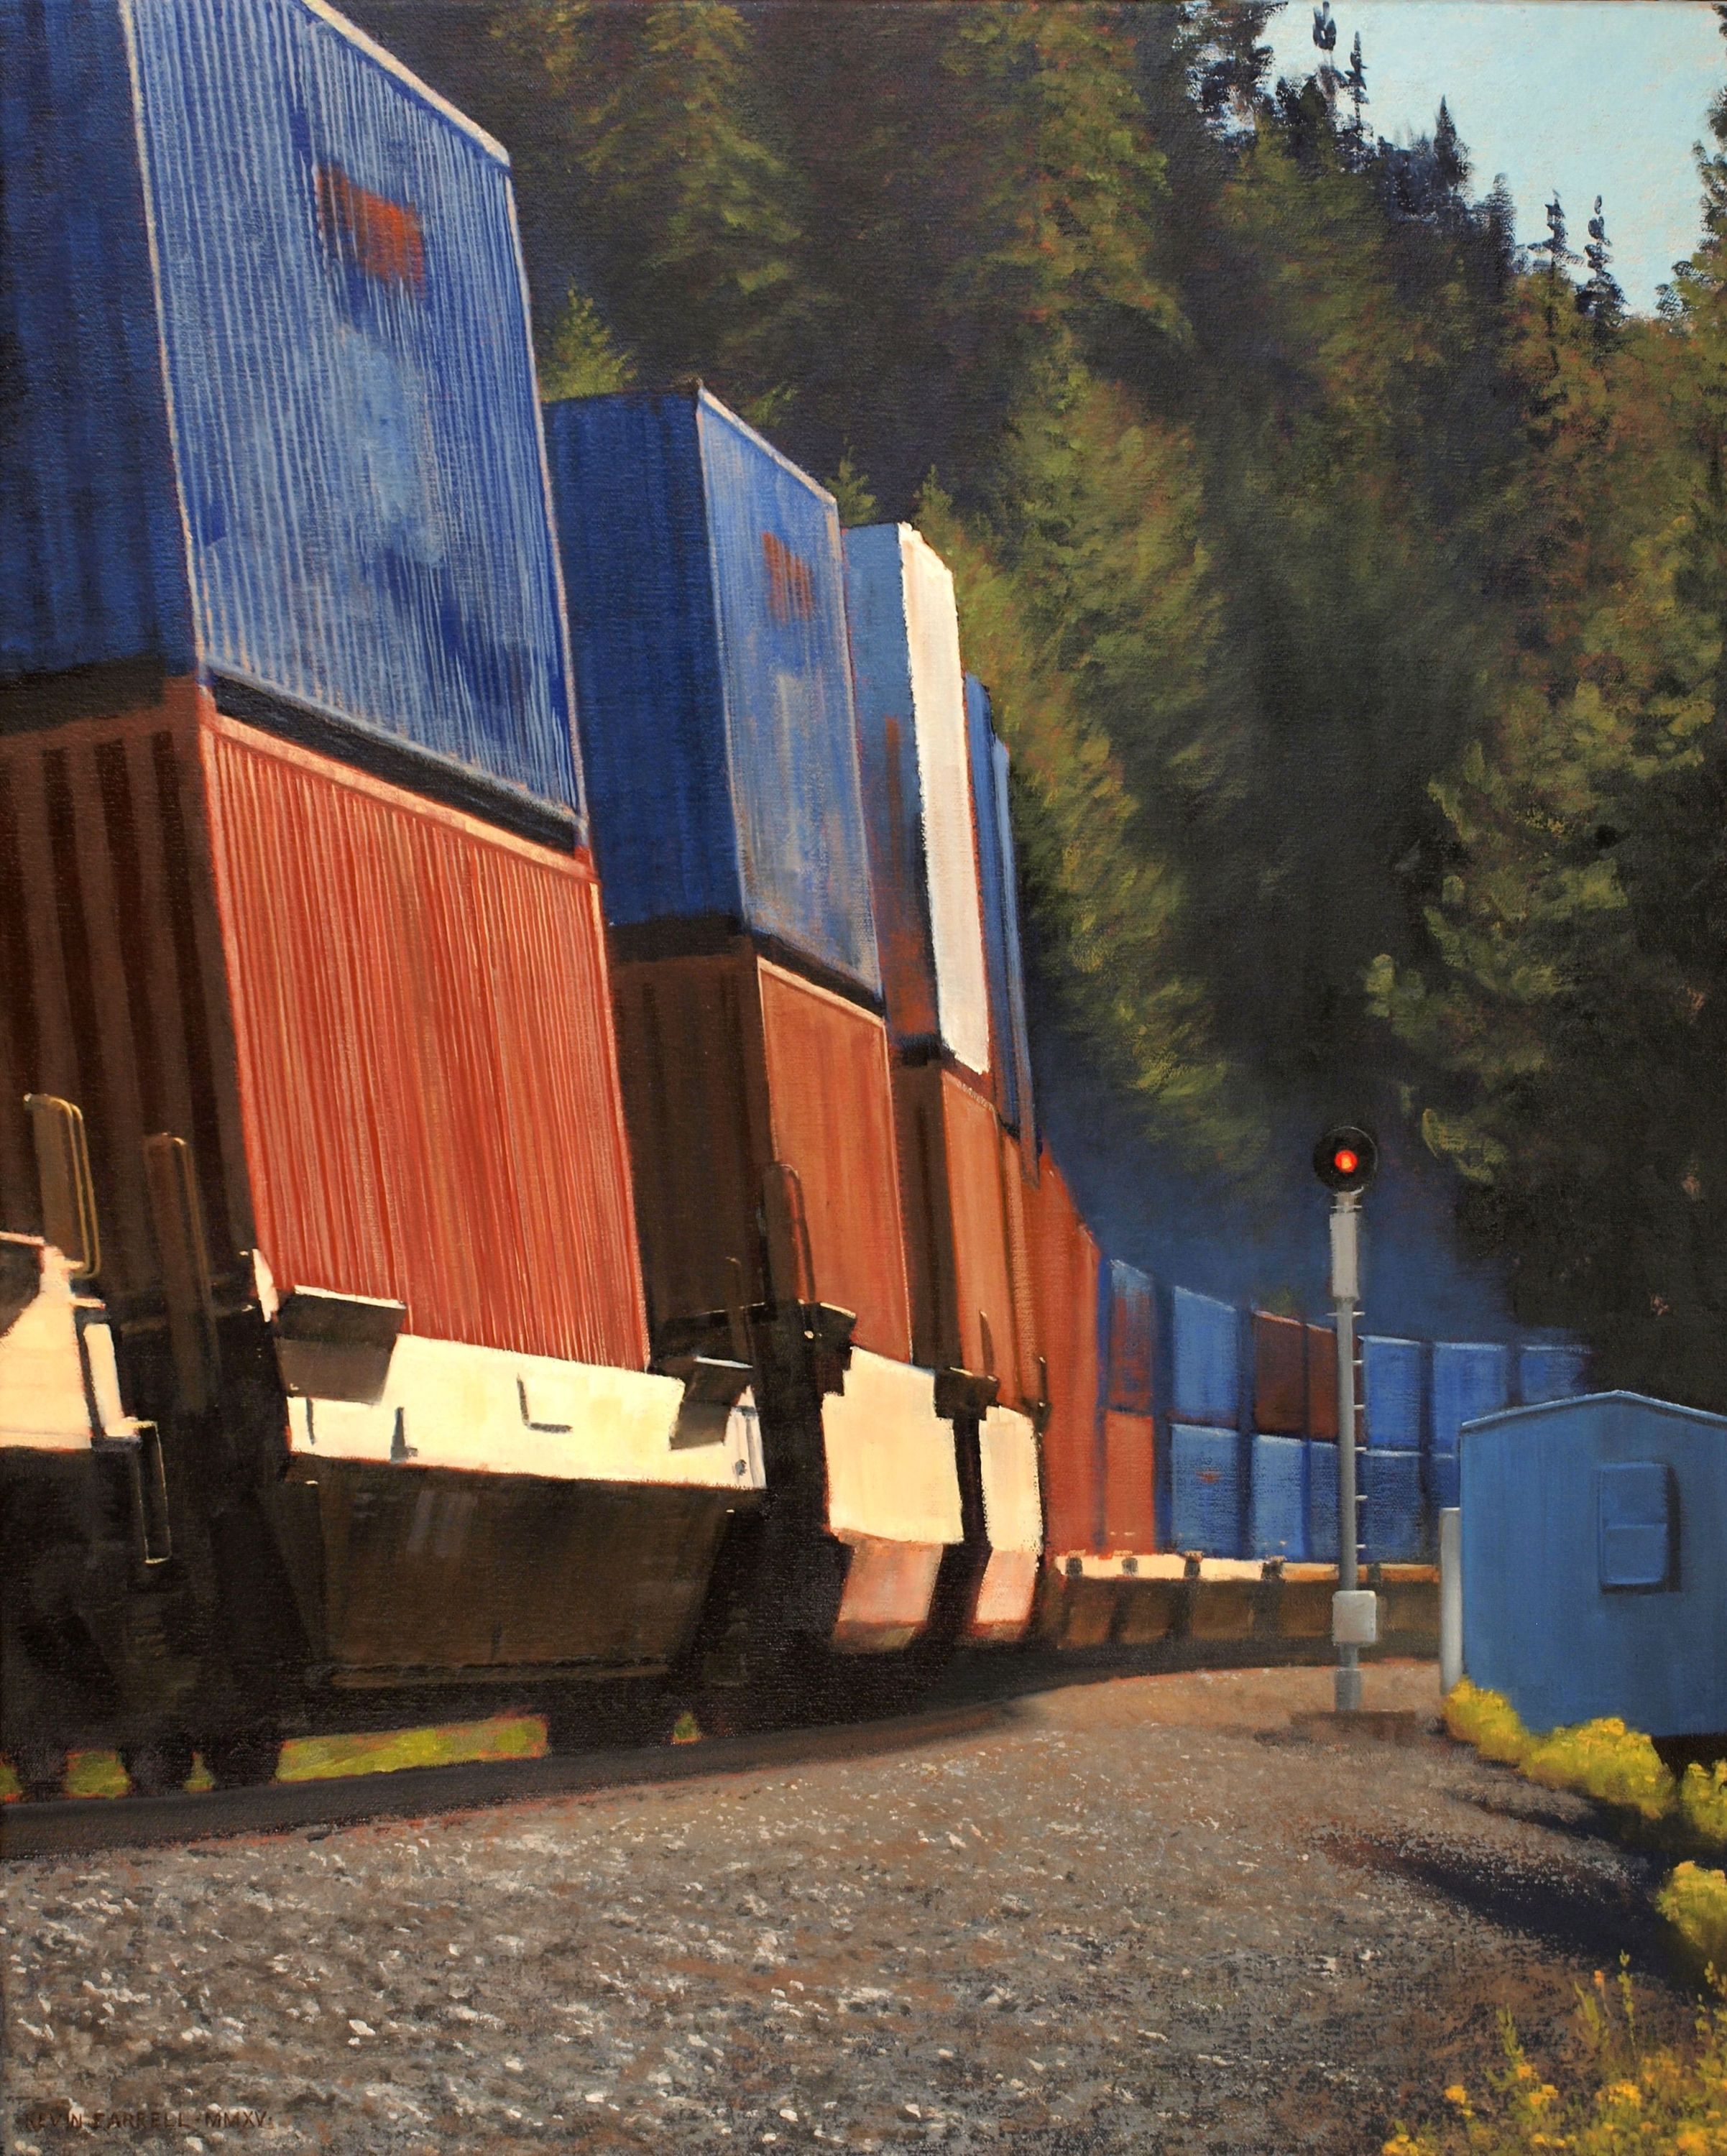 Container Train - Kevin Farrell